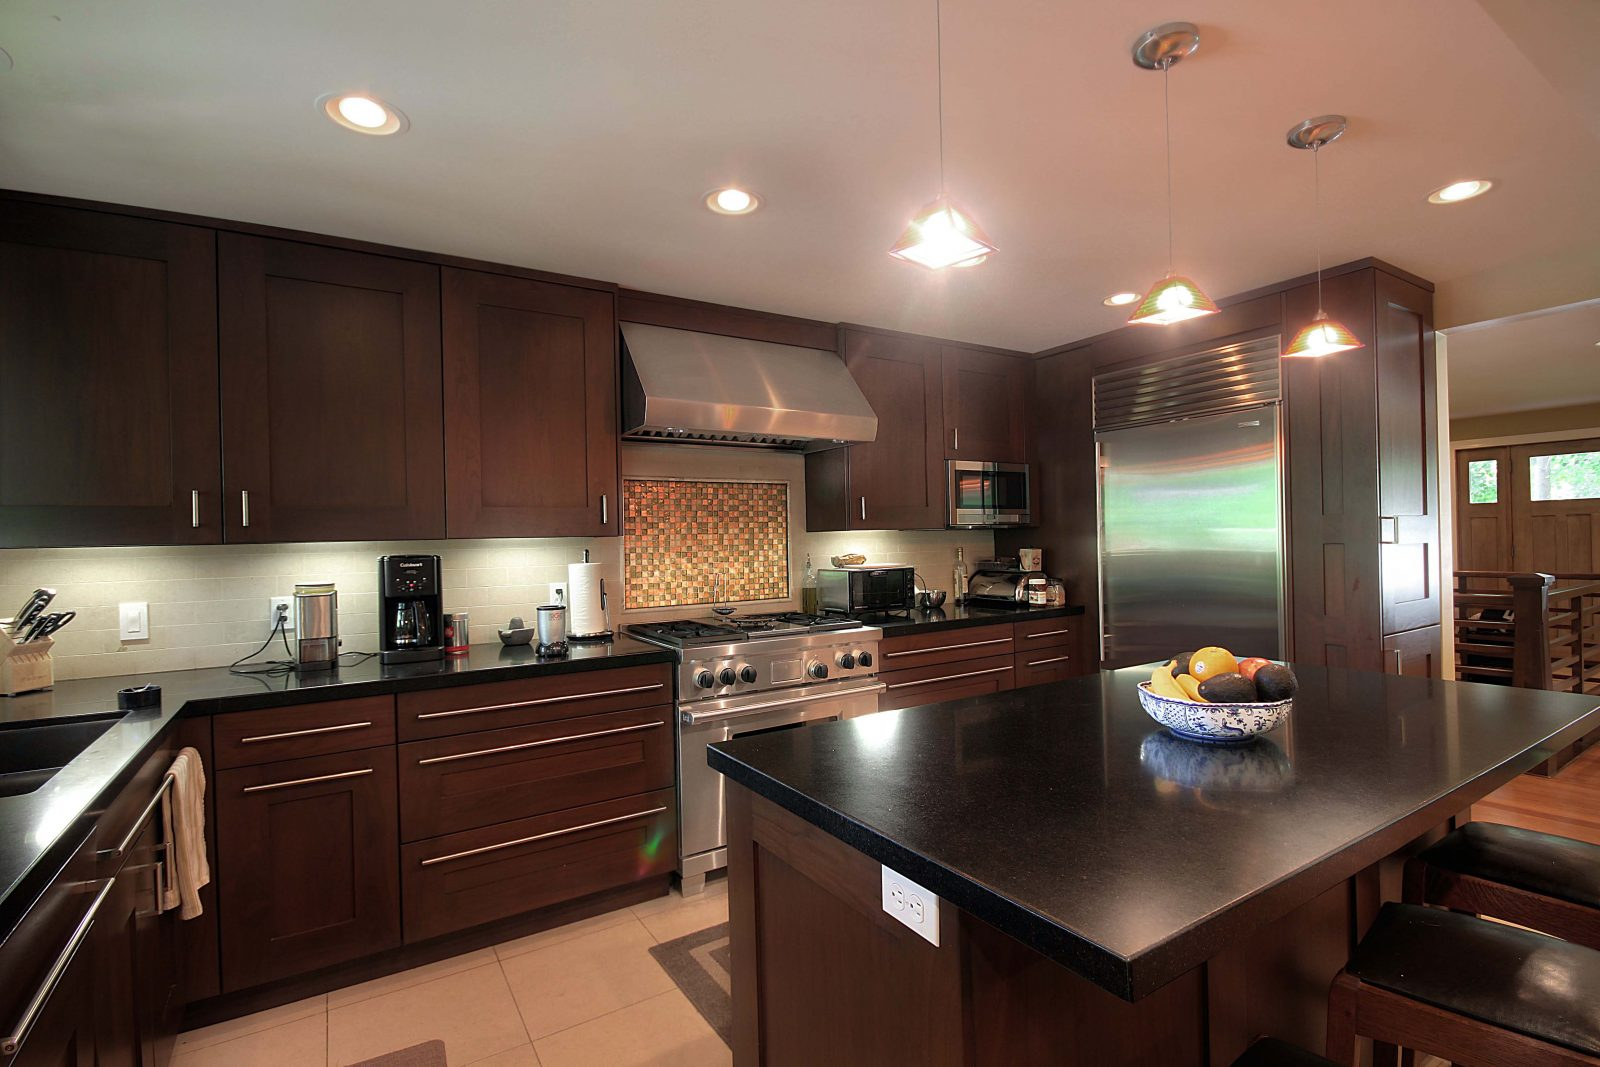 After_Interior Design_Kitchen Remodel_Renovation Design Group | Renovation Design Group